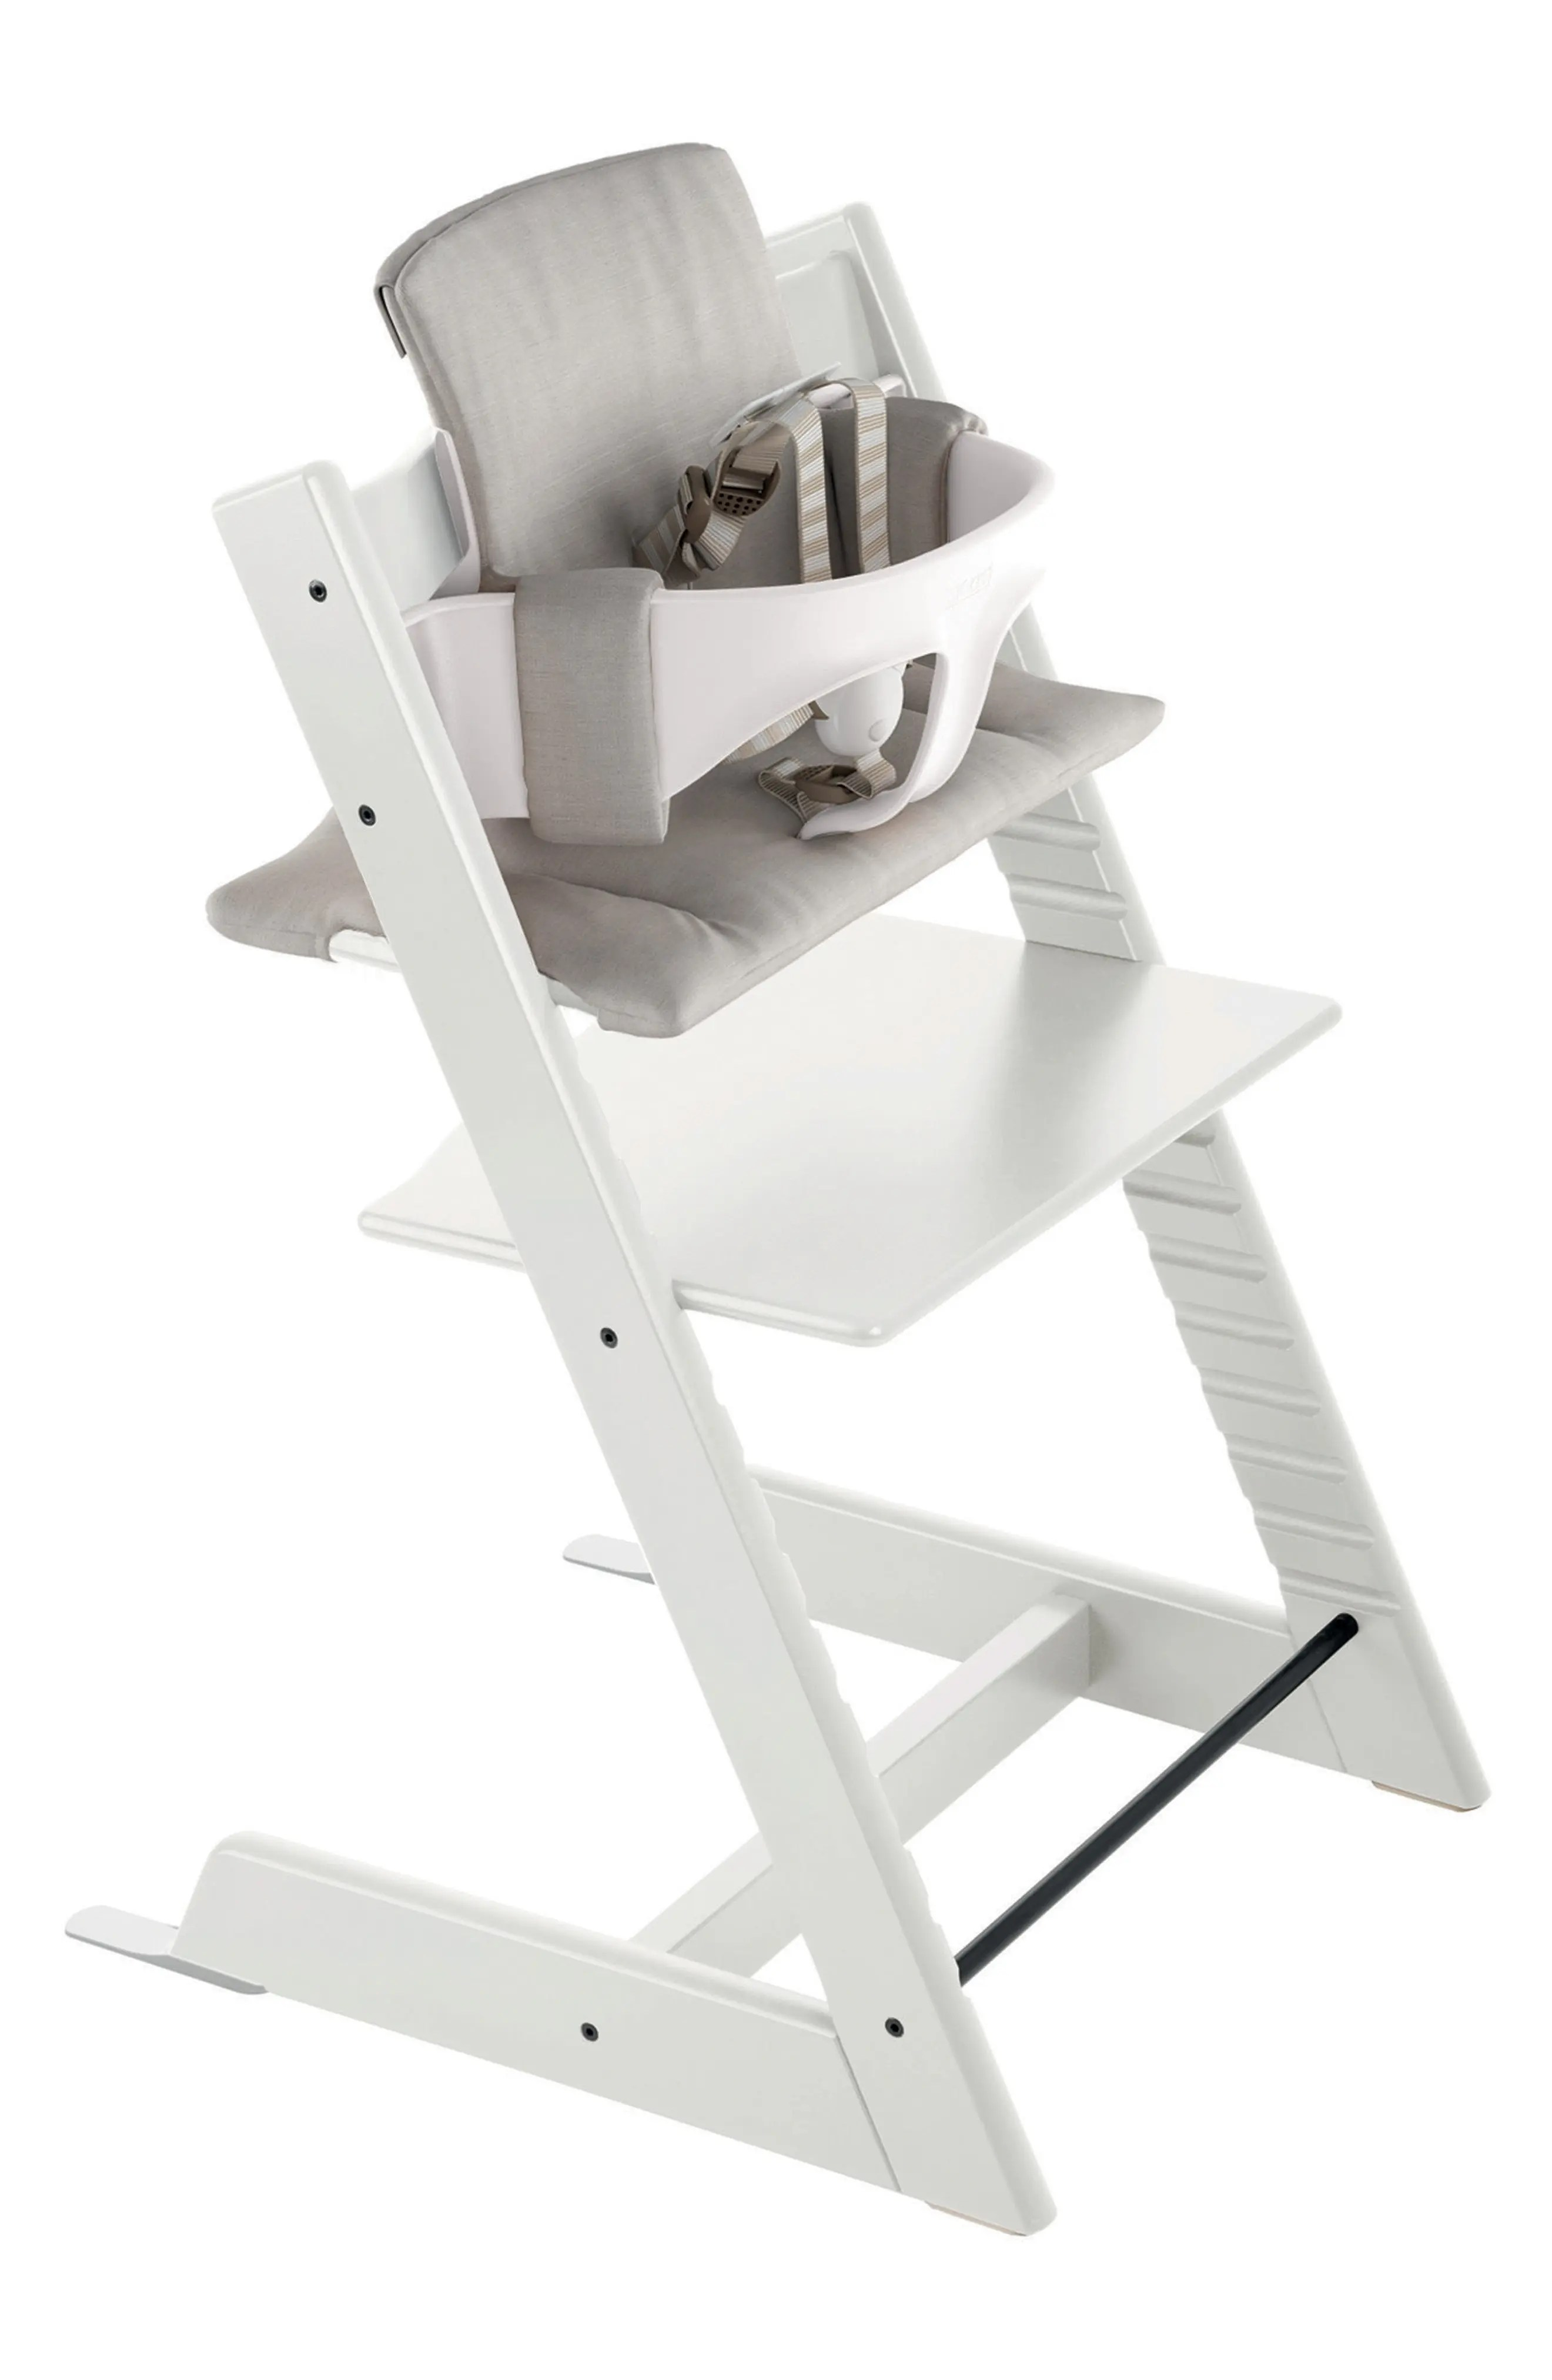 stokke high chair public relations chairs covers booster seats for tables nordstrom tripp trapp baby set cushion tray exclusive